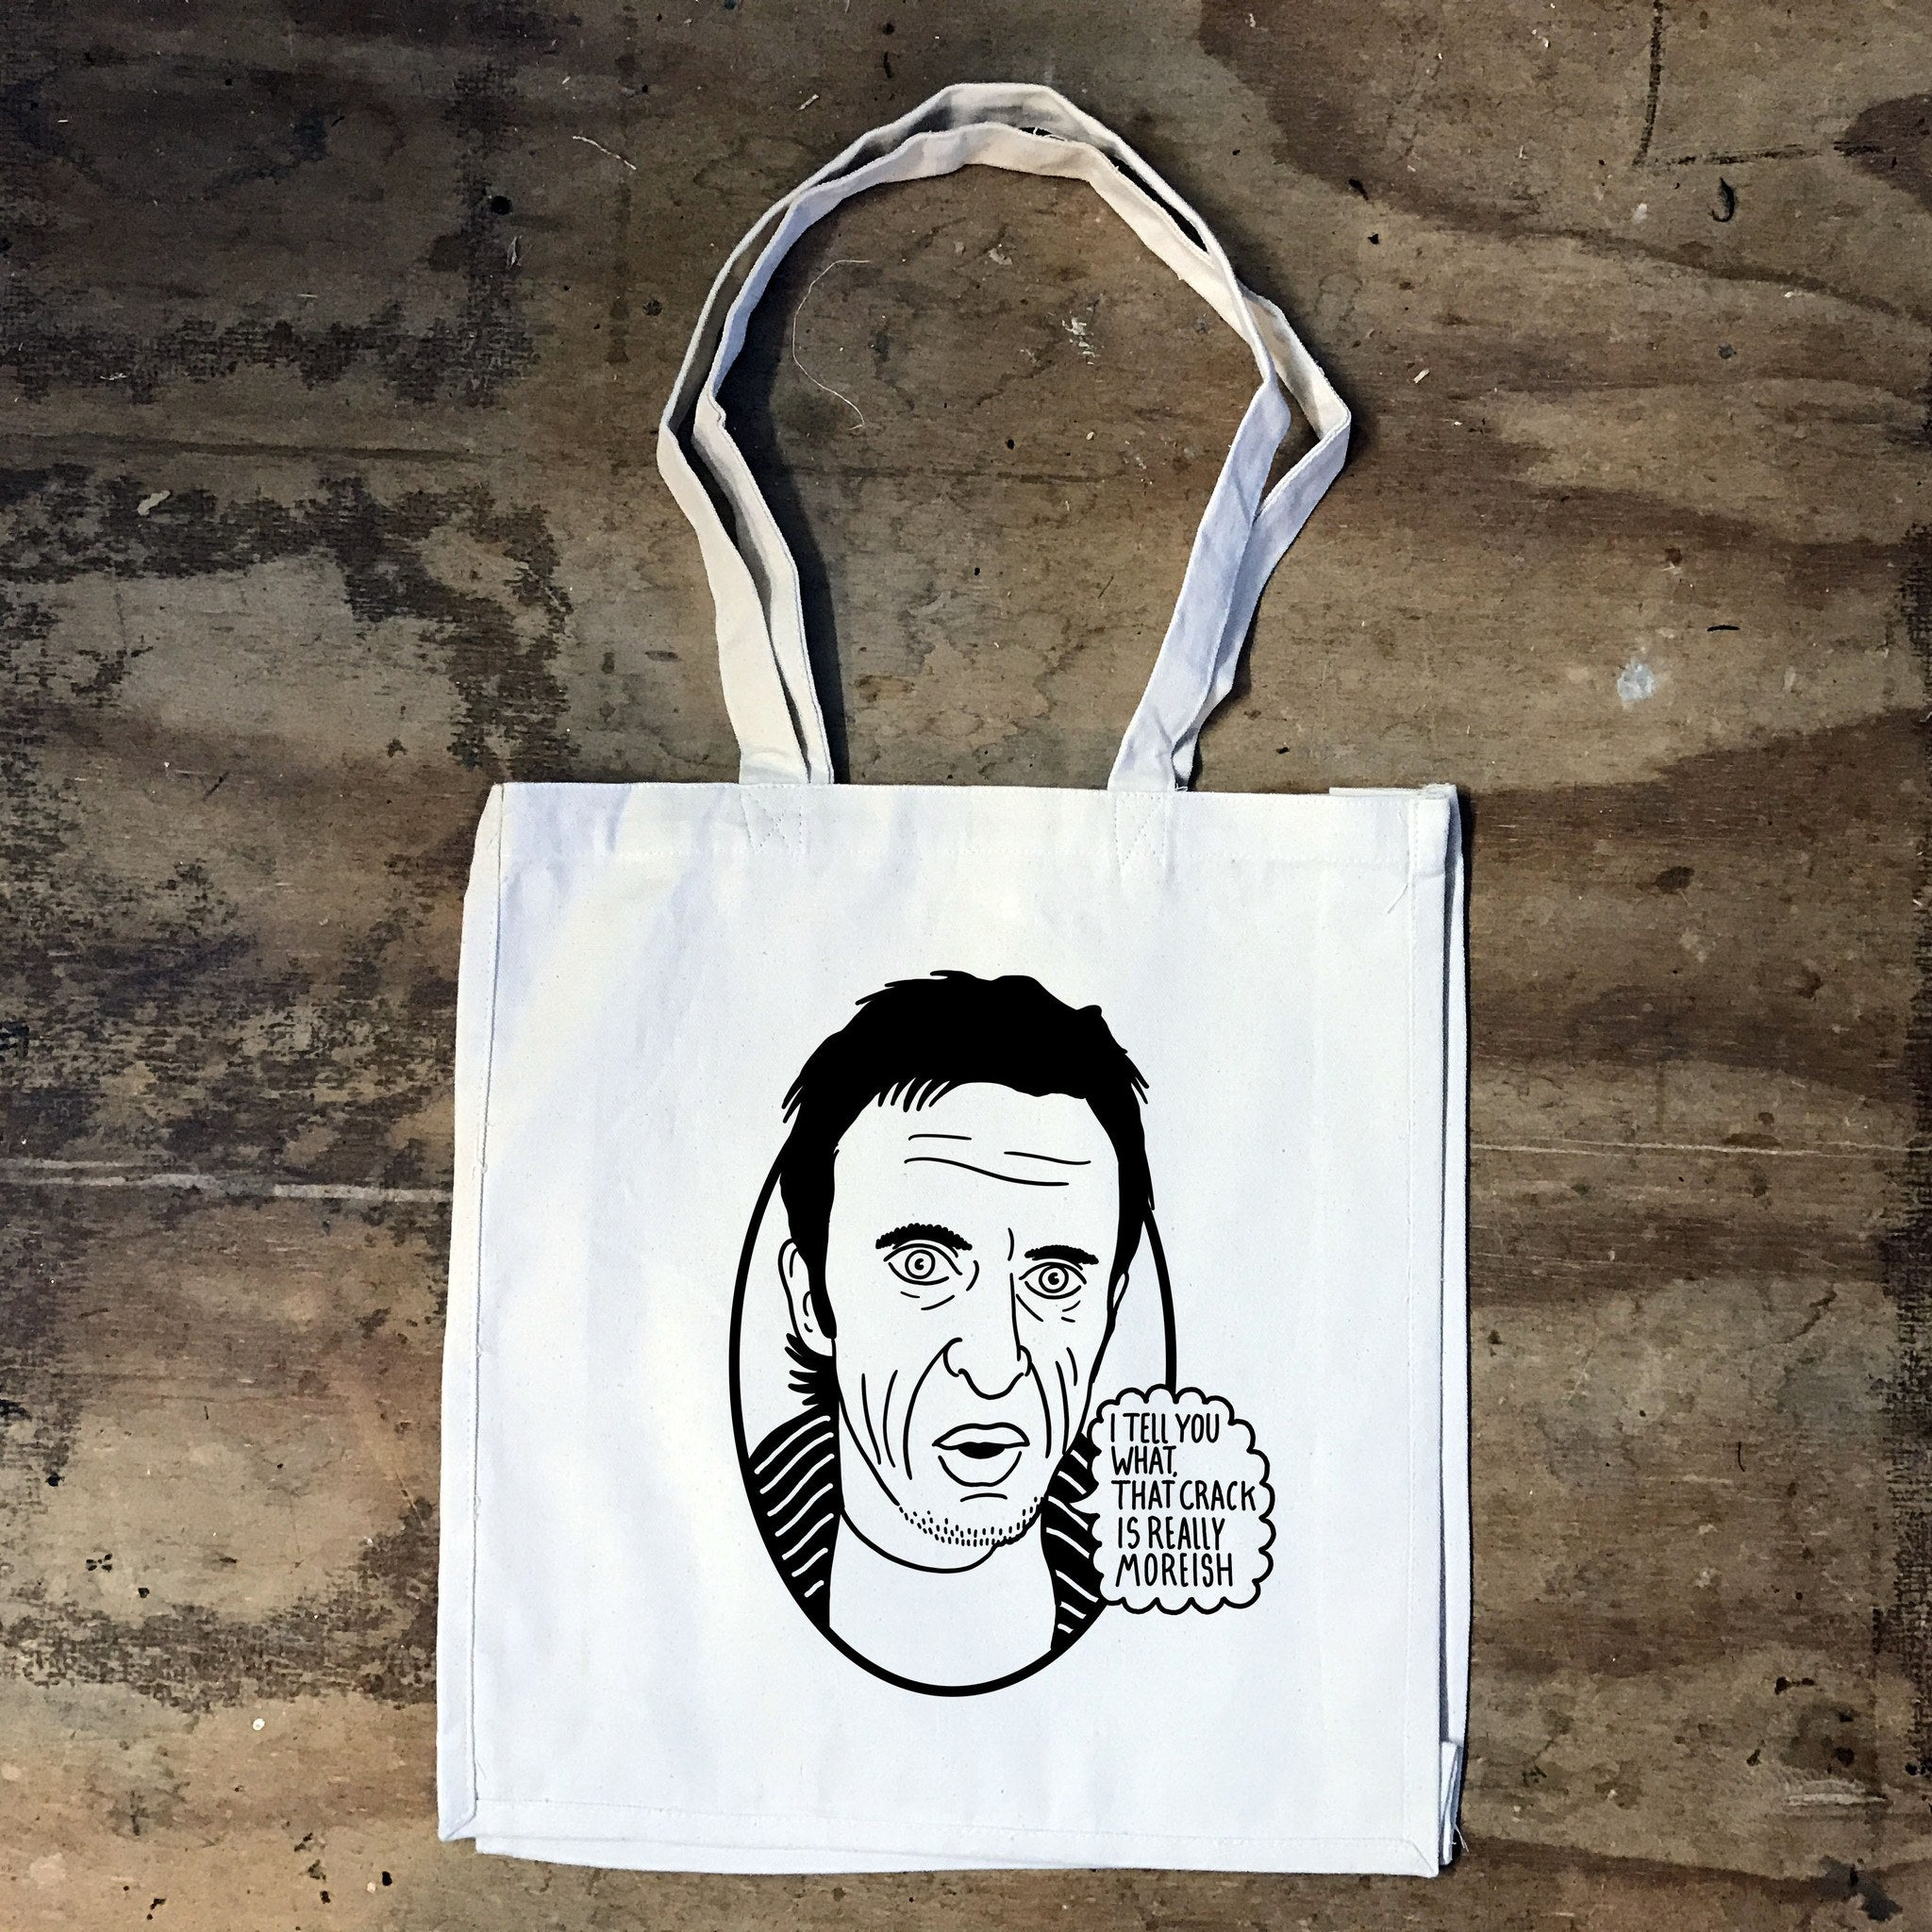 Peep Show - Super Hans -This Crack is a bit moreish - Tote Bag - Jiggle Apparel